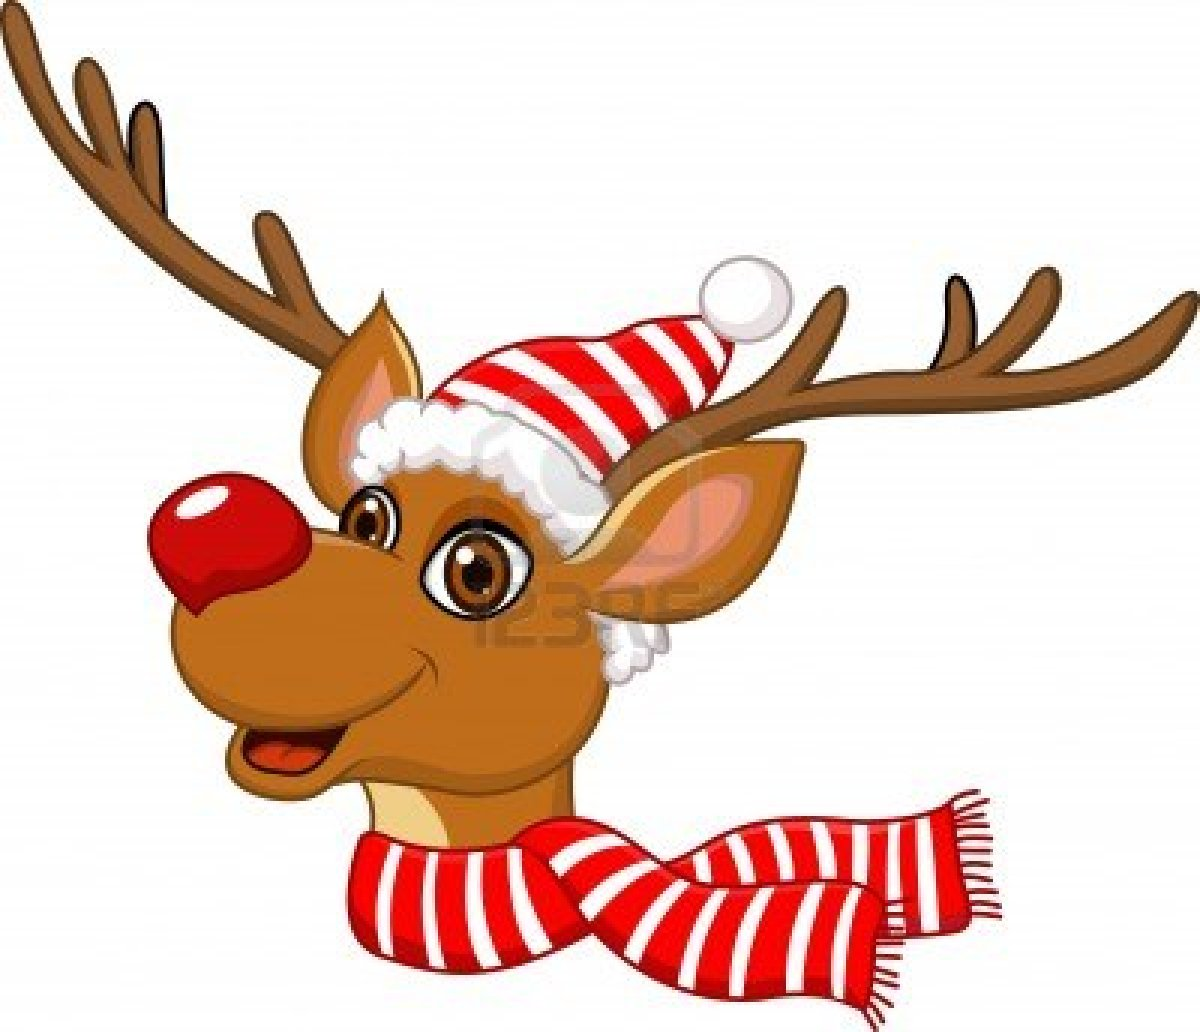 Free rudolph clipart. Reindeer many interesting cliparts